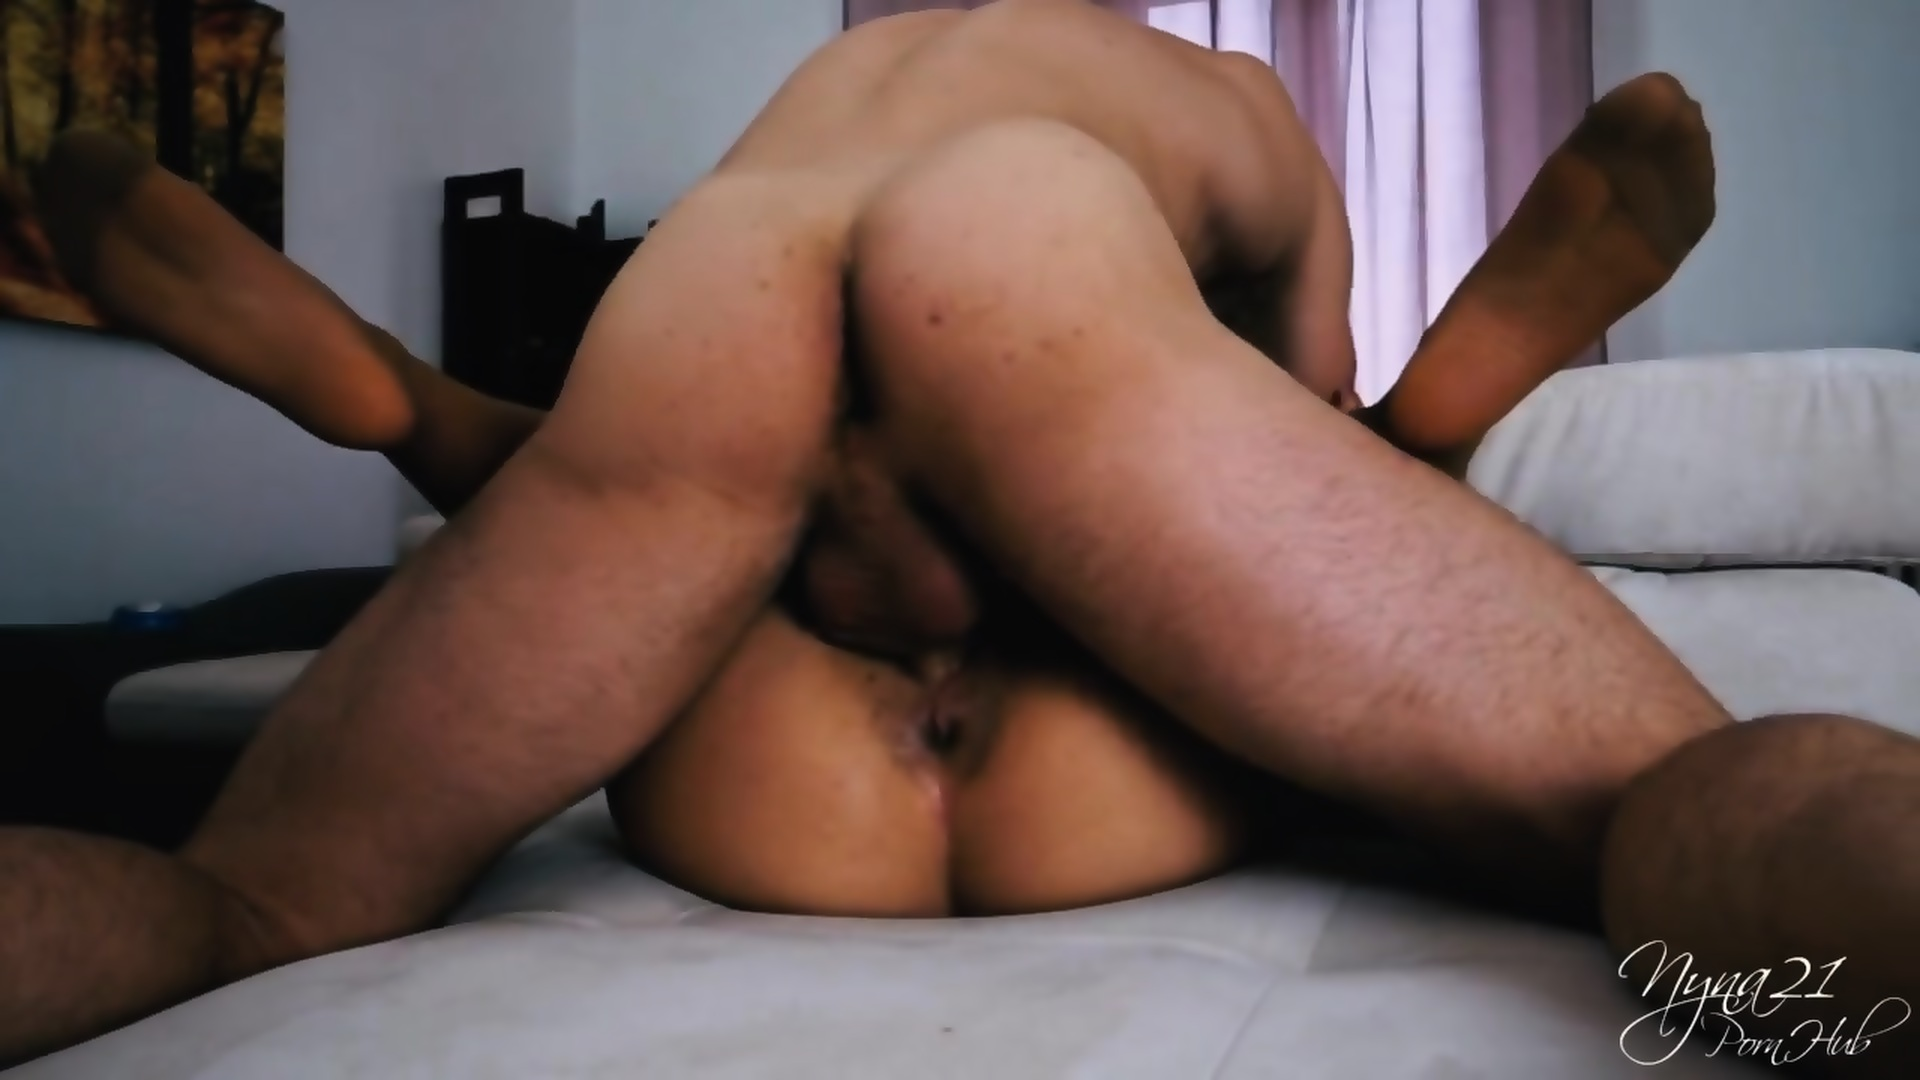 First Anal Crying Creampie